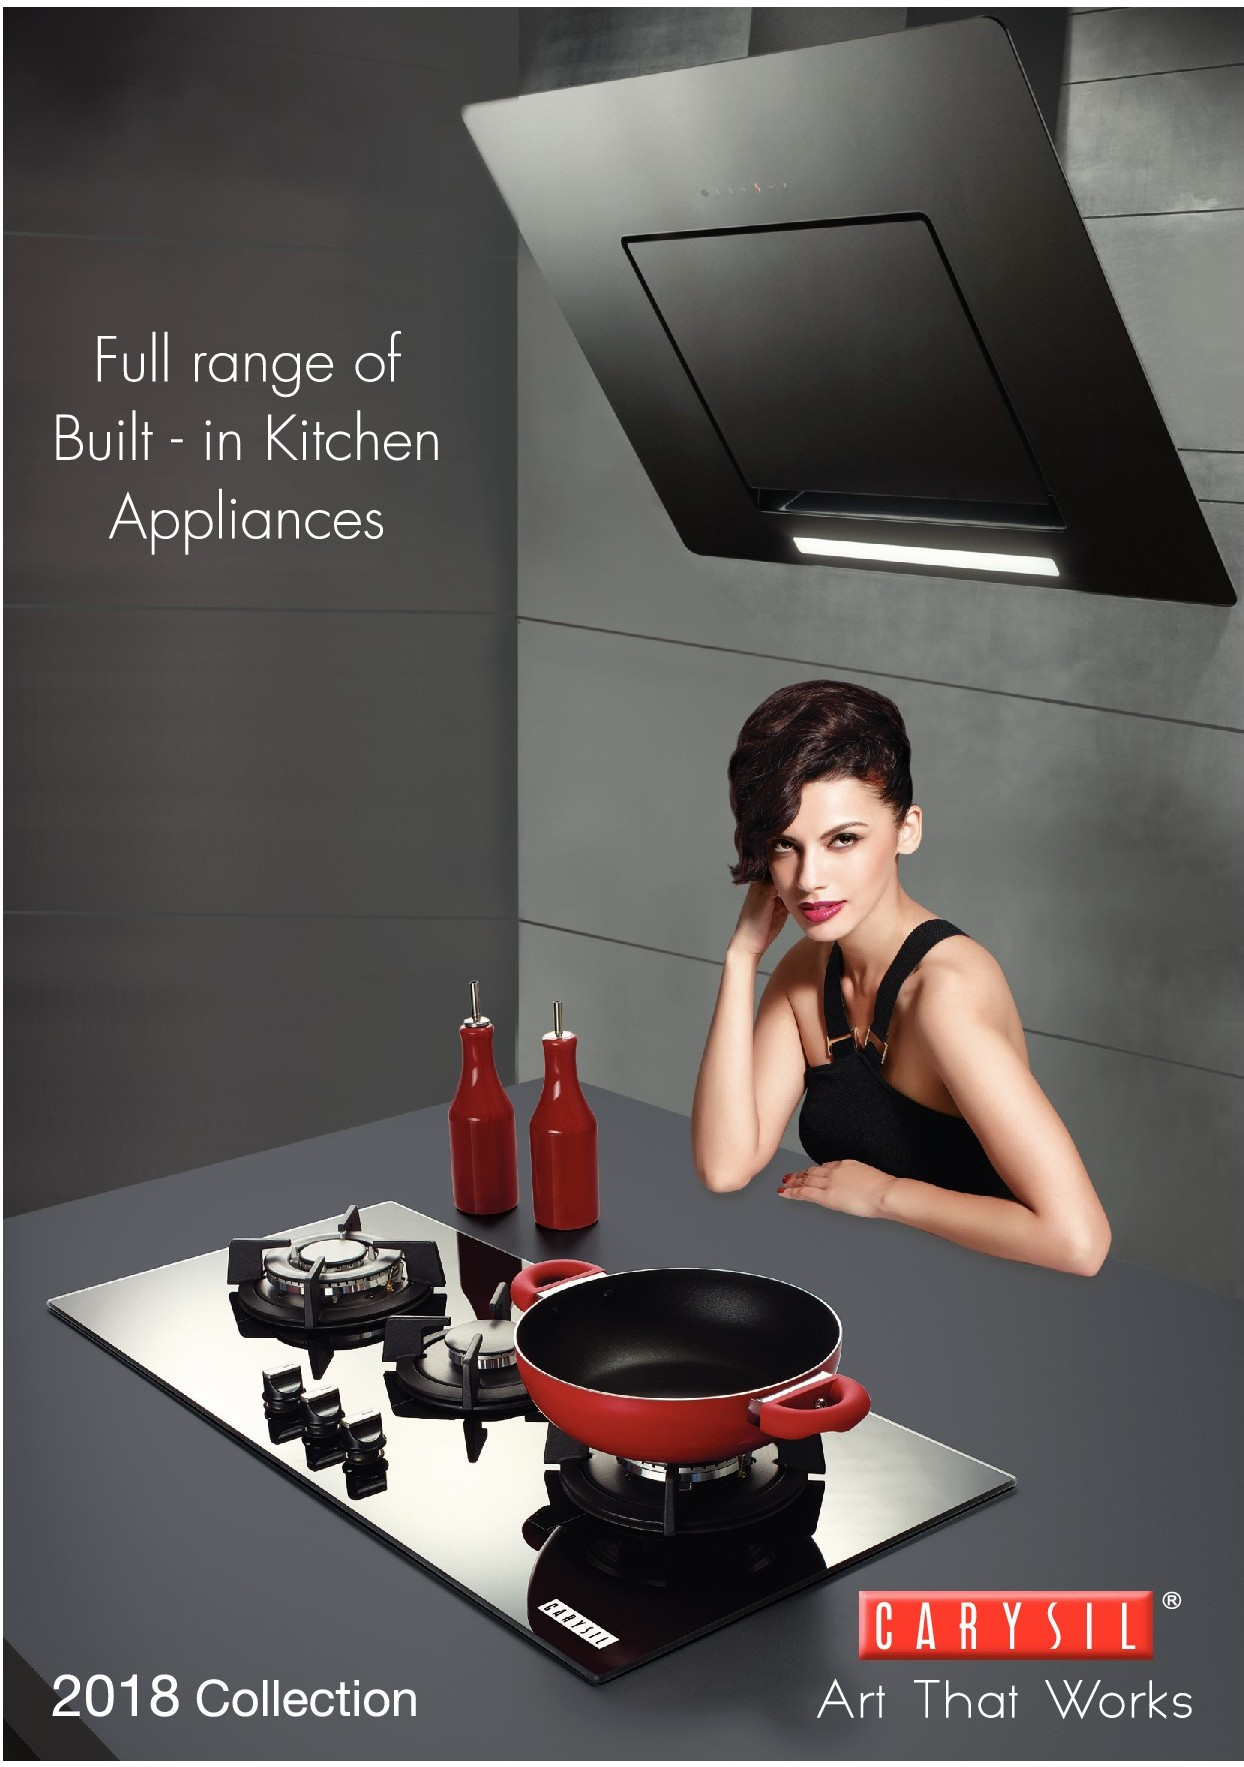 Carysil Products Catalogue